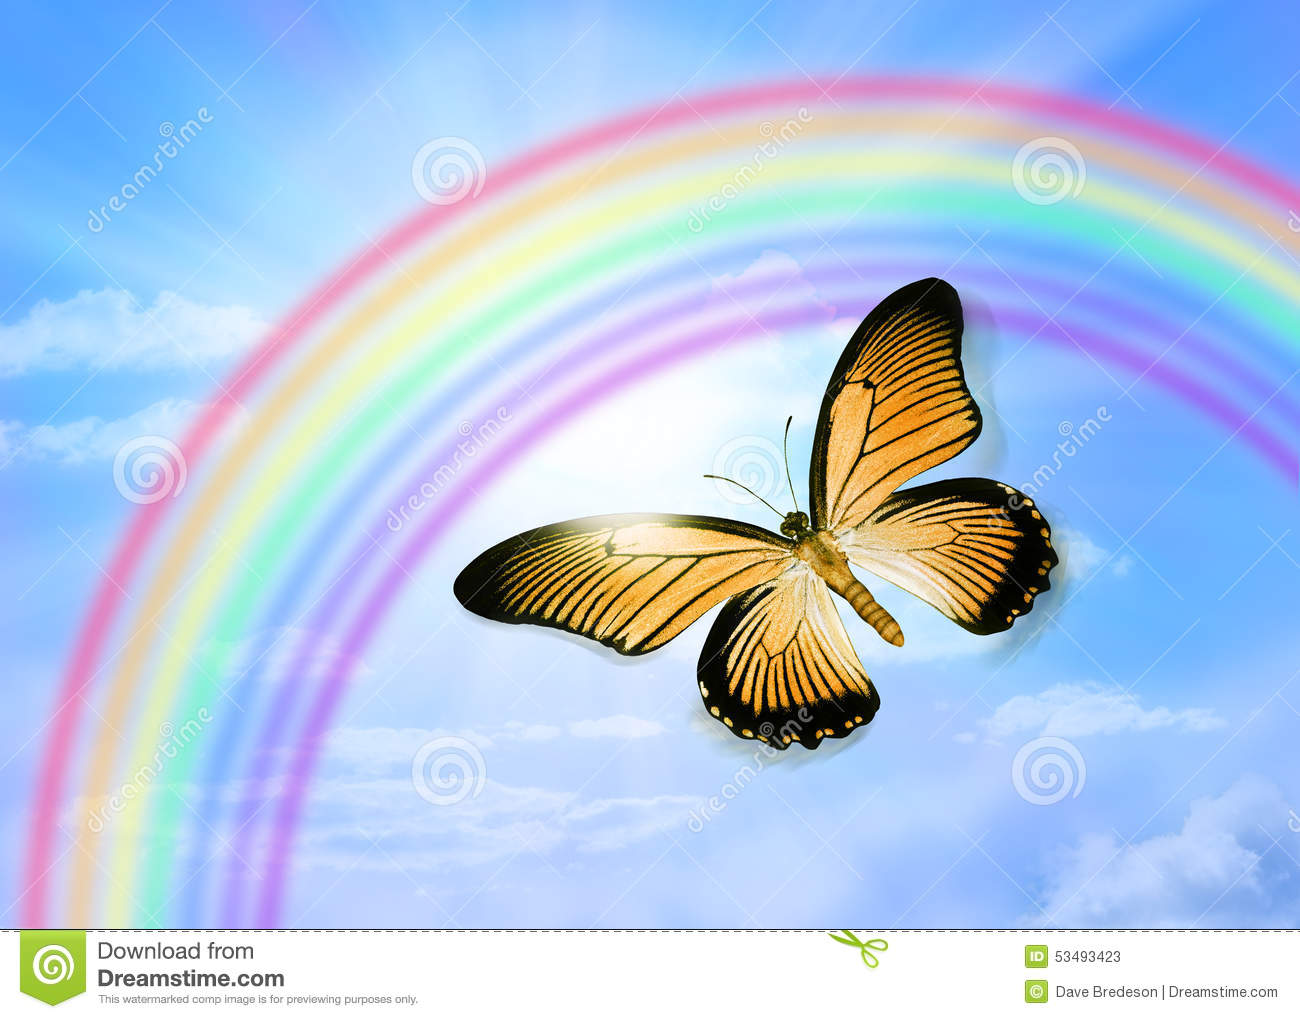 rainbow color butterfly stock photos images u0026 pictures 308 images